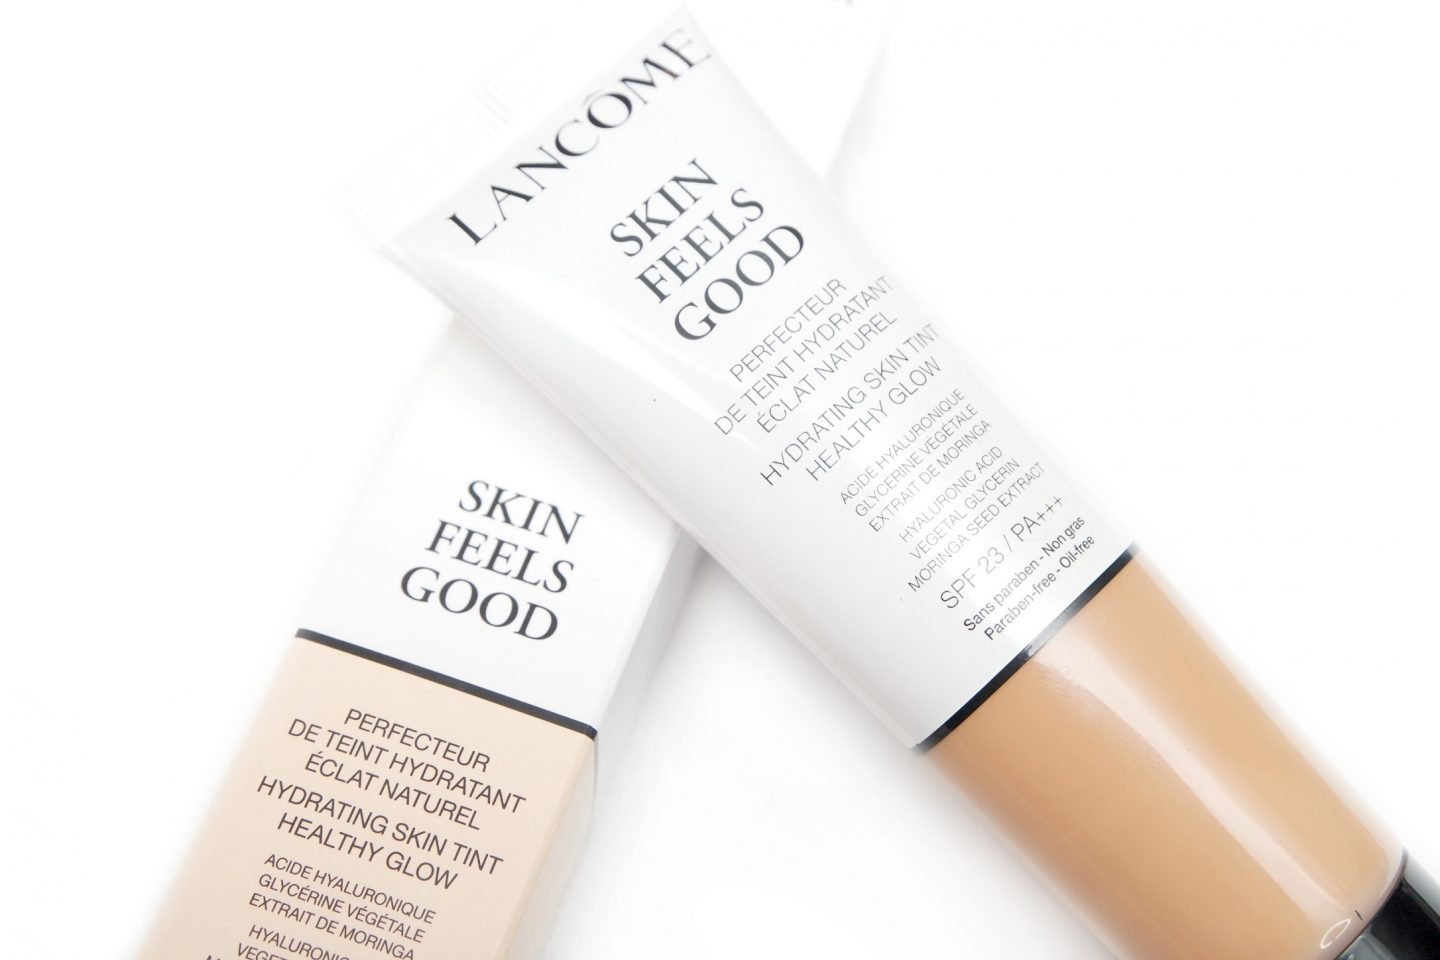 Lancôme Skin Feels Good Hydrating Skin Tint Review